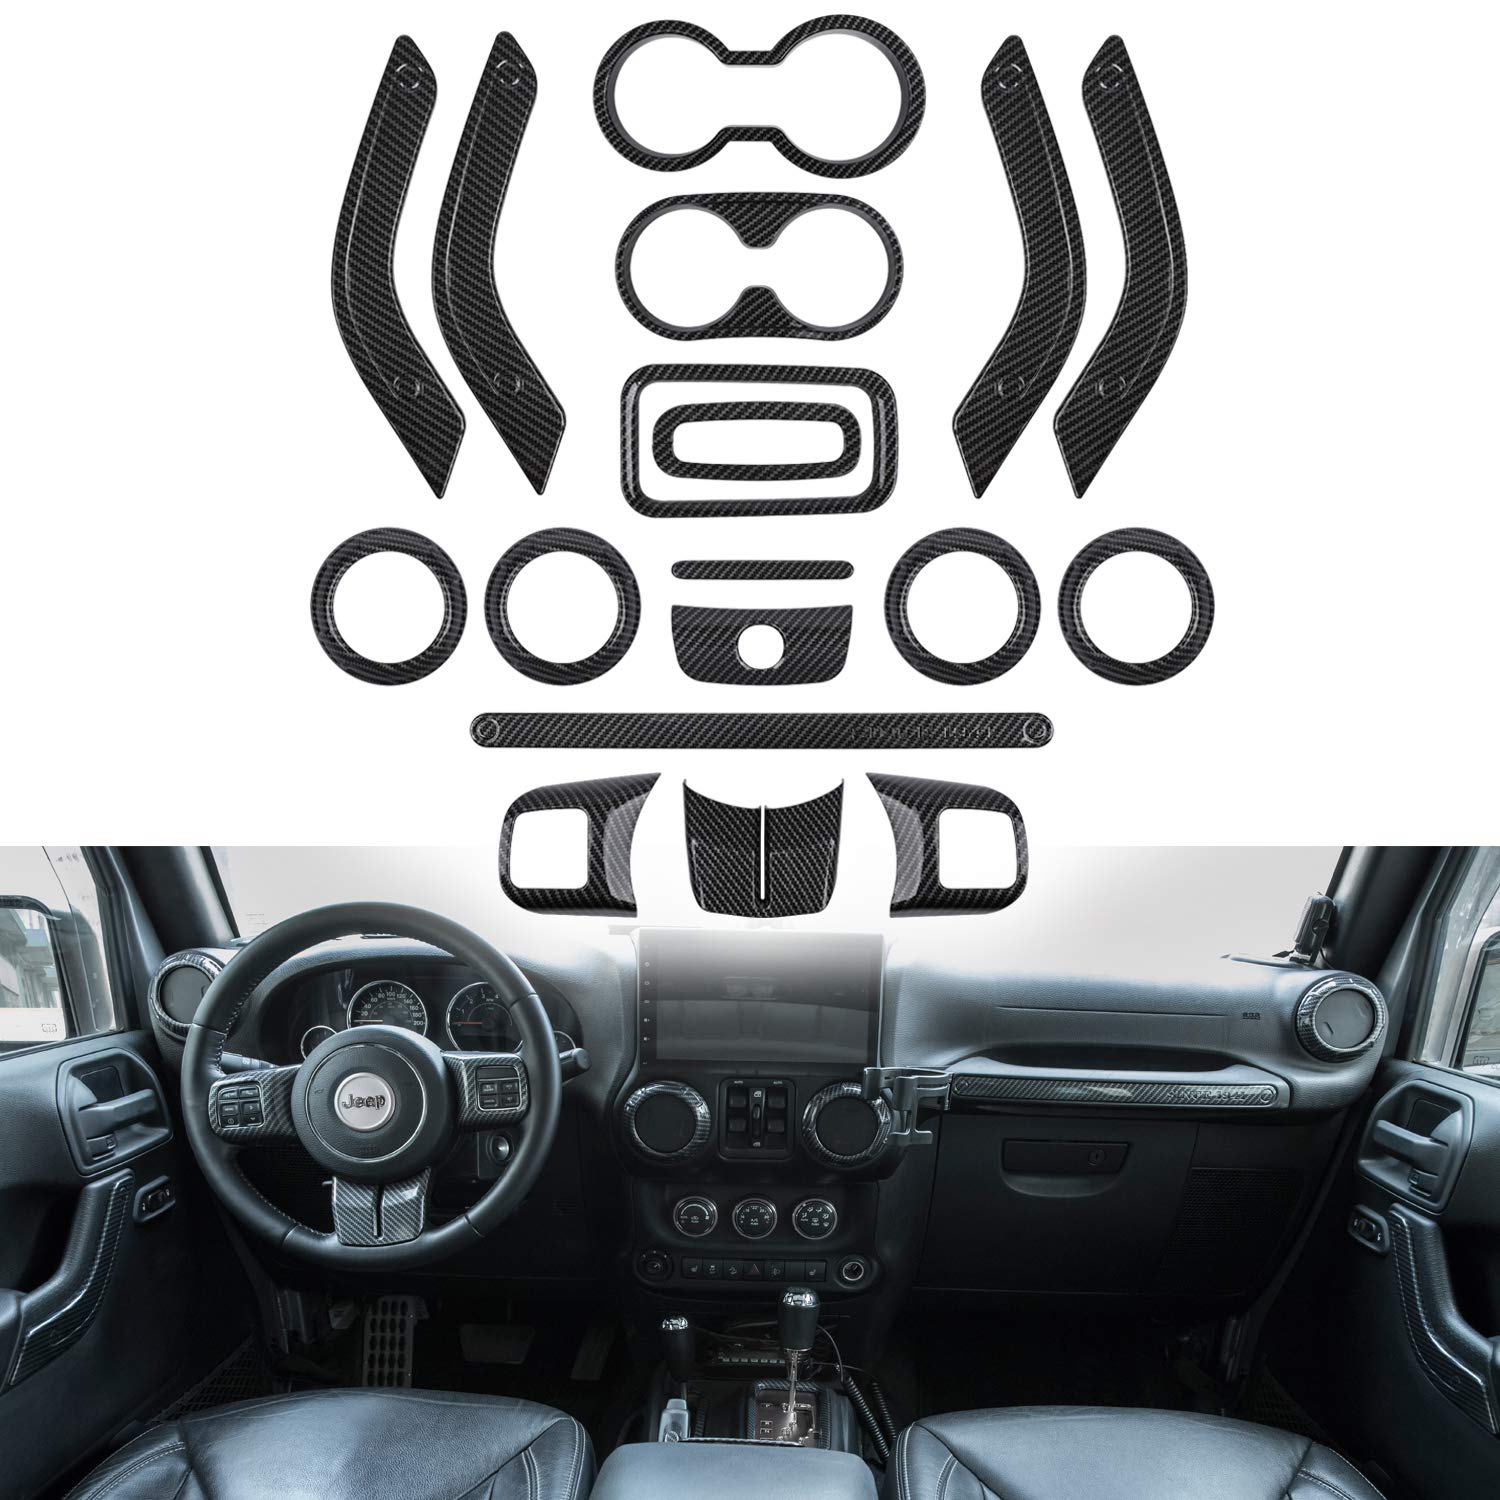 Opall 18PCS Full Set Interior Decoration Trim Kit Steering Wheel & Center Console Air Outlet Trim, Door Handle Cover Inner For Jeep Wrangler 2011-2017 2 Door &4 Door (Carbon Fiber 18PCS) by Opall